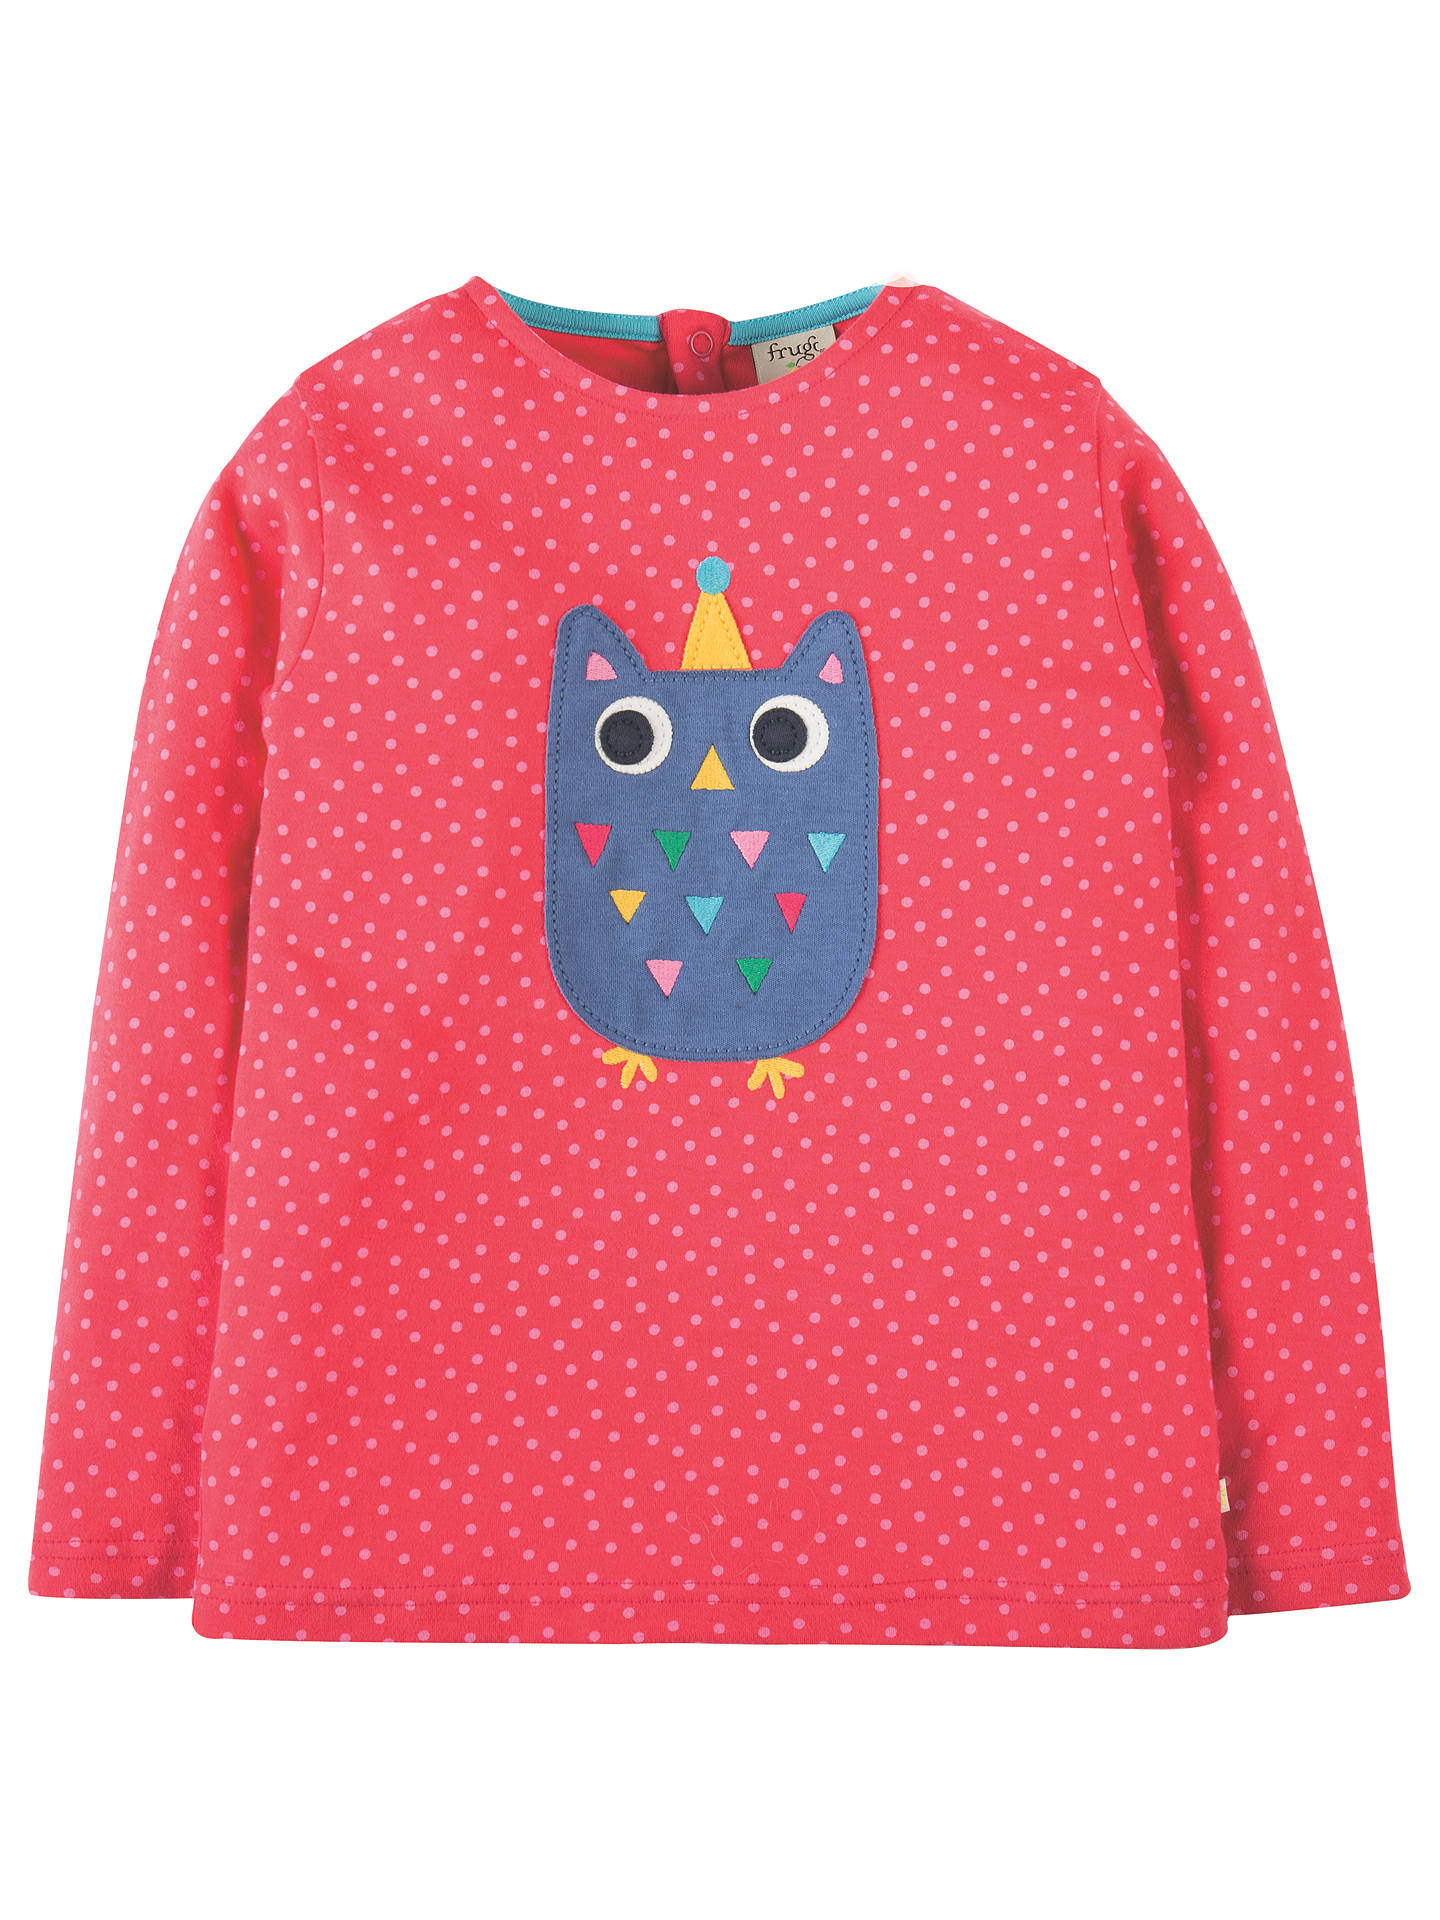 5-6 and 7-8 Years Frugi Girls Owl Skirt  age 4-5